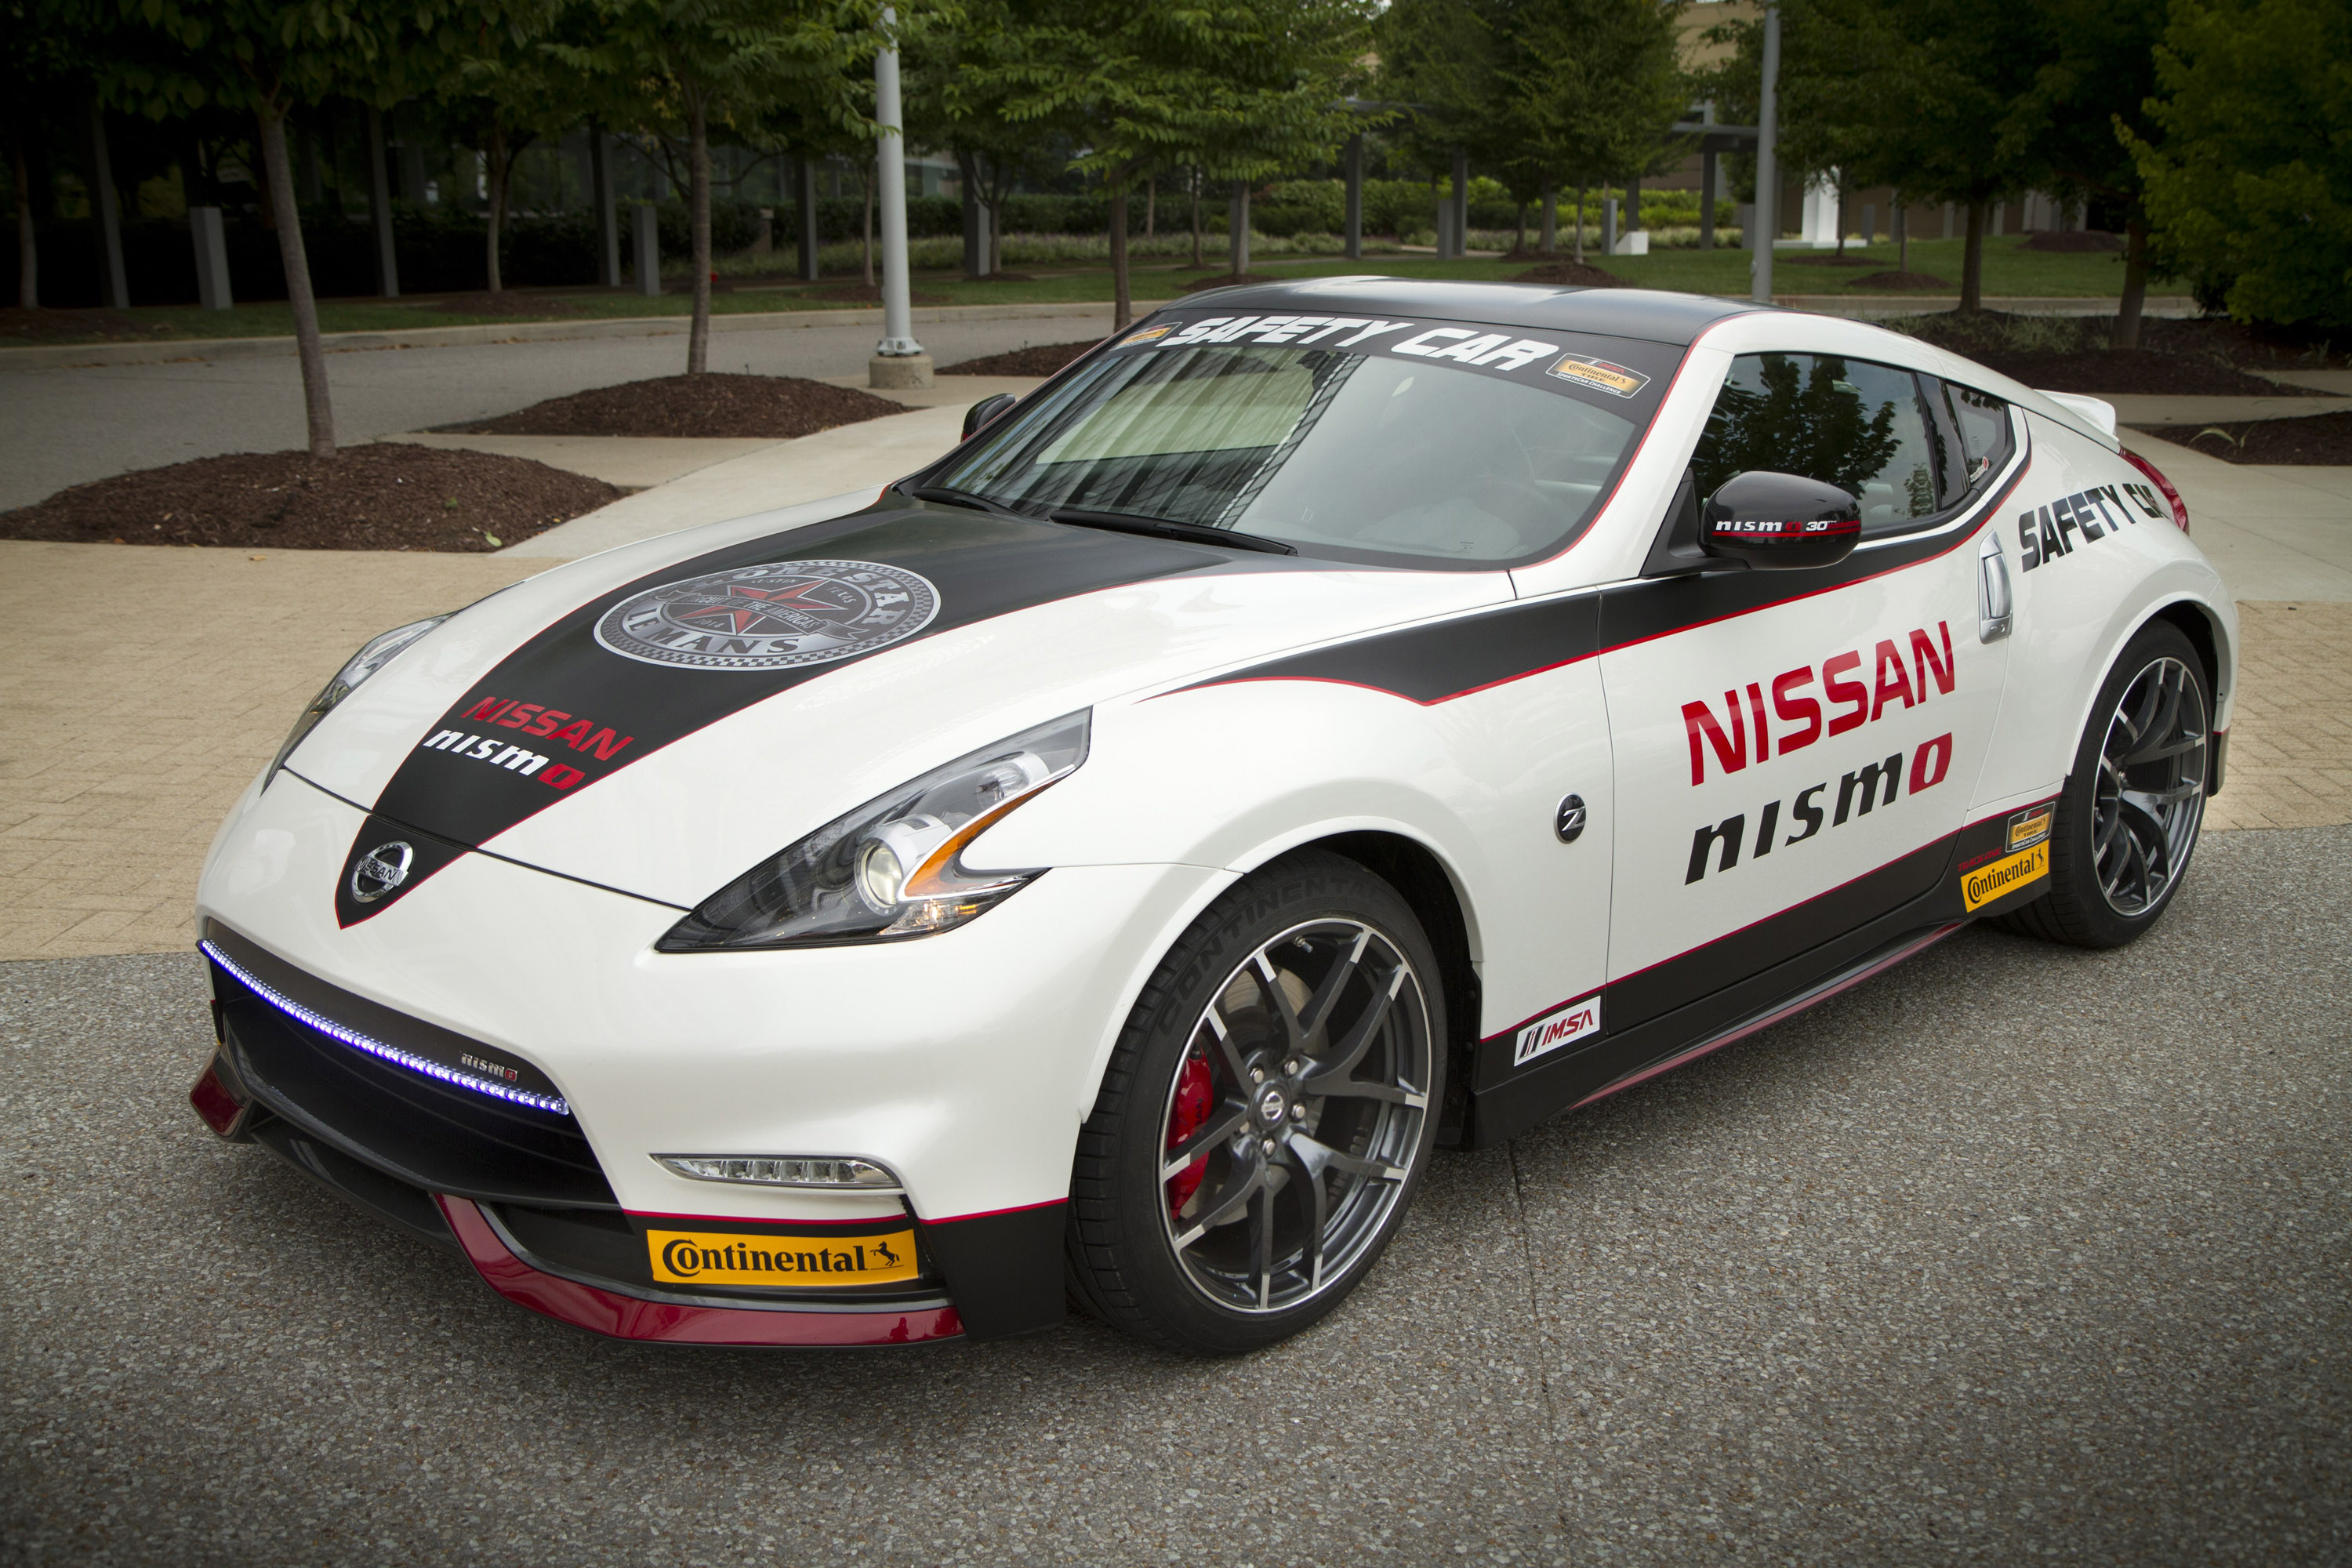 2015 nissan 370z nismo is the official safety car at circuit of the americas. Black Bedroom Furniture Sets. Home Design Ideas